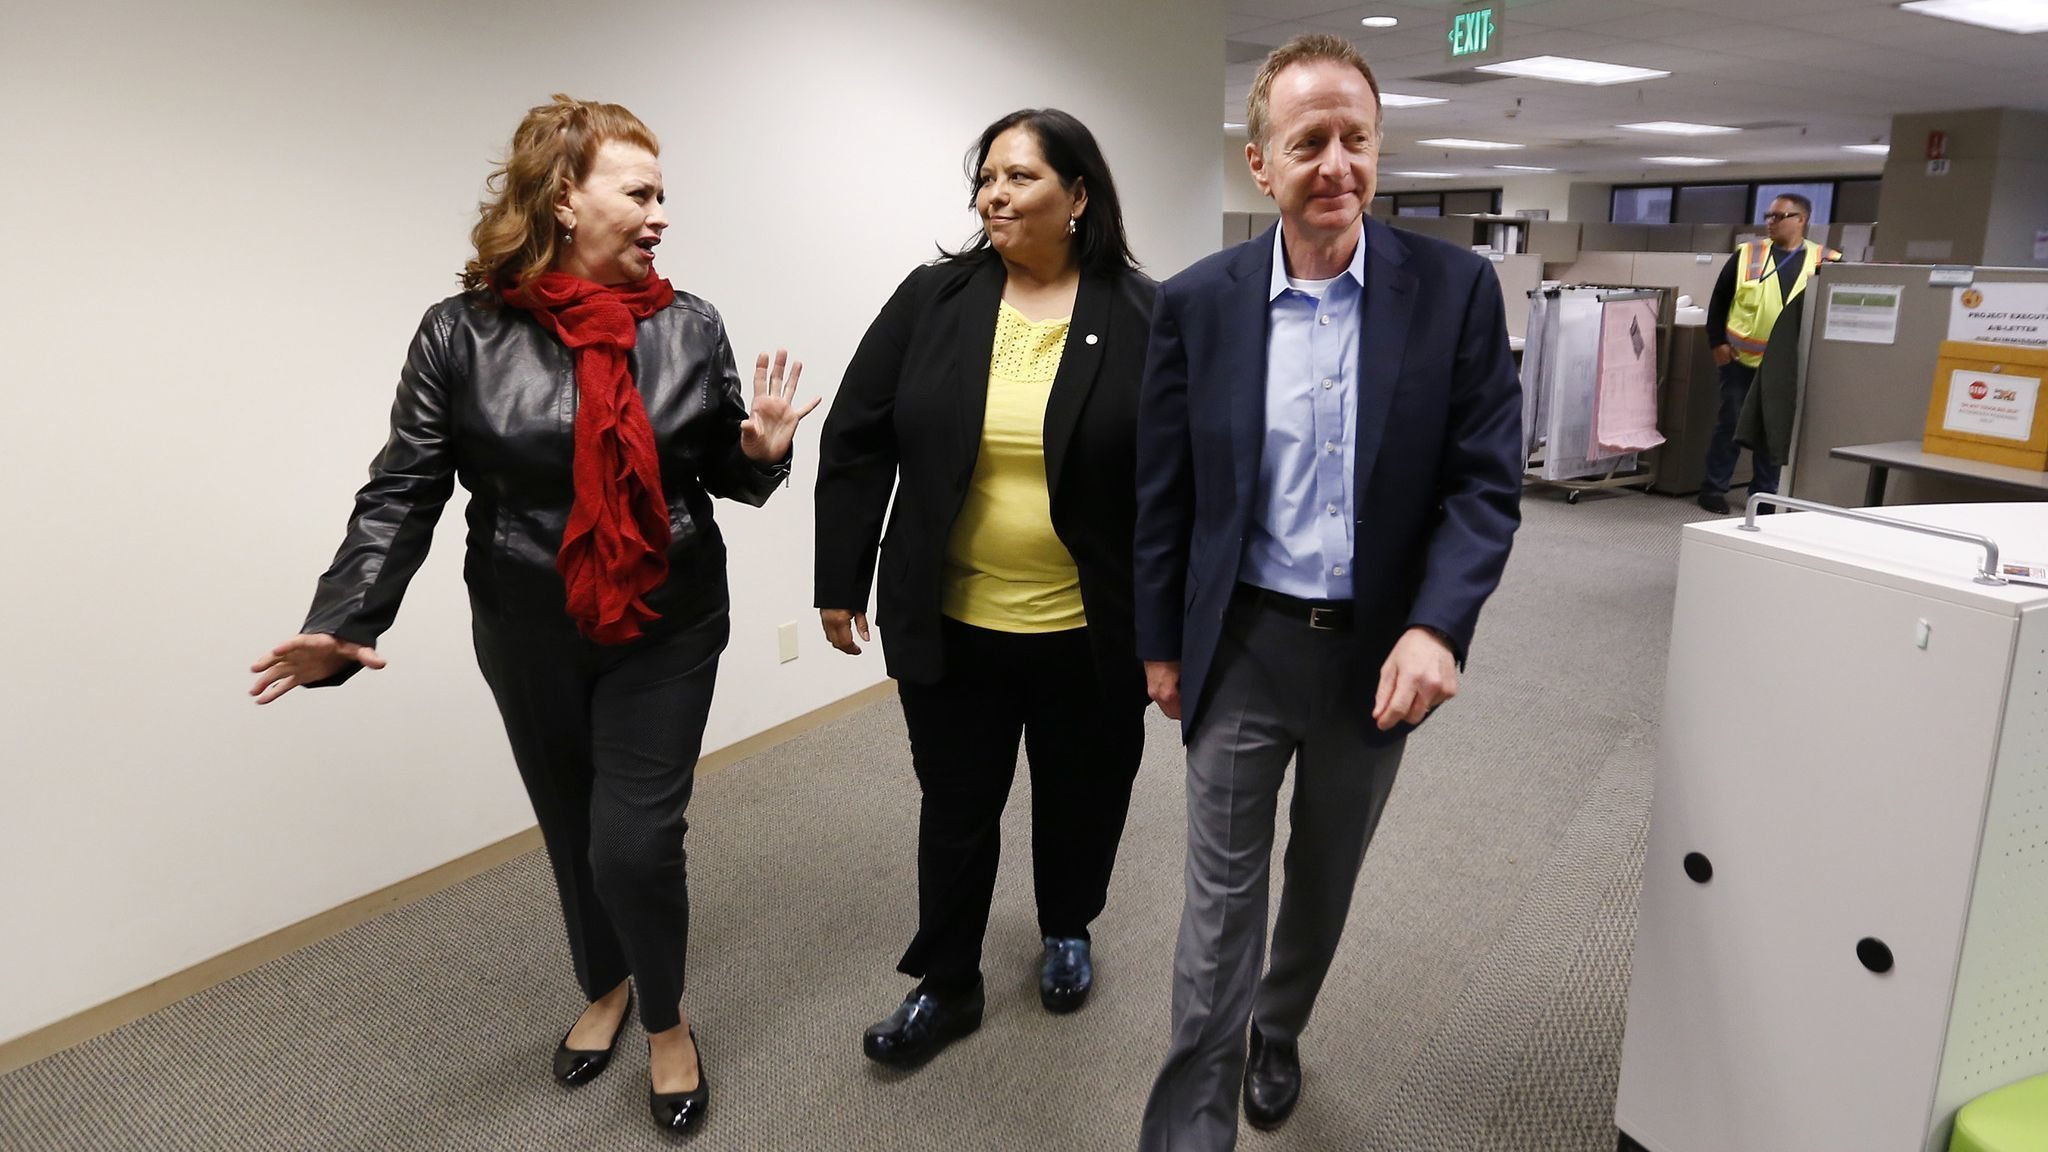 LOS ANGELES, CA - JANUARY 14, 2019 Los Angeles School Superintendent Austin Beutner, right, with S